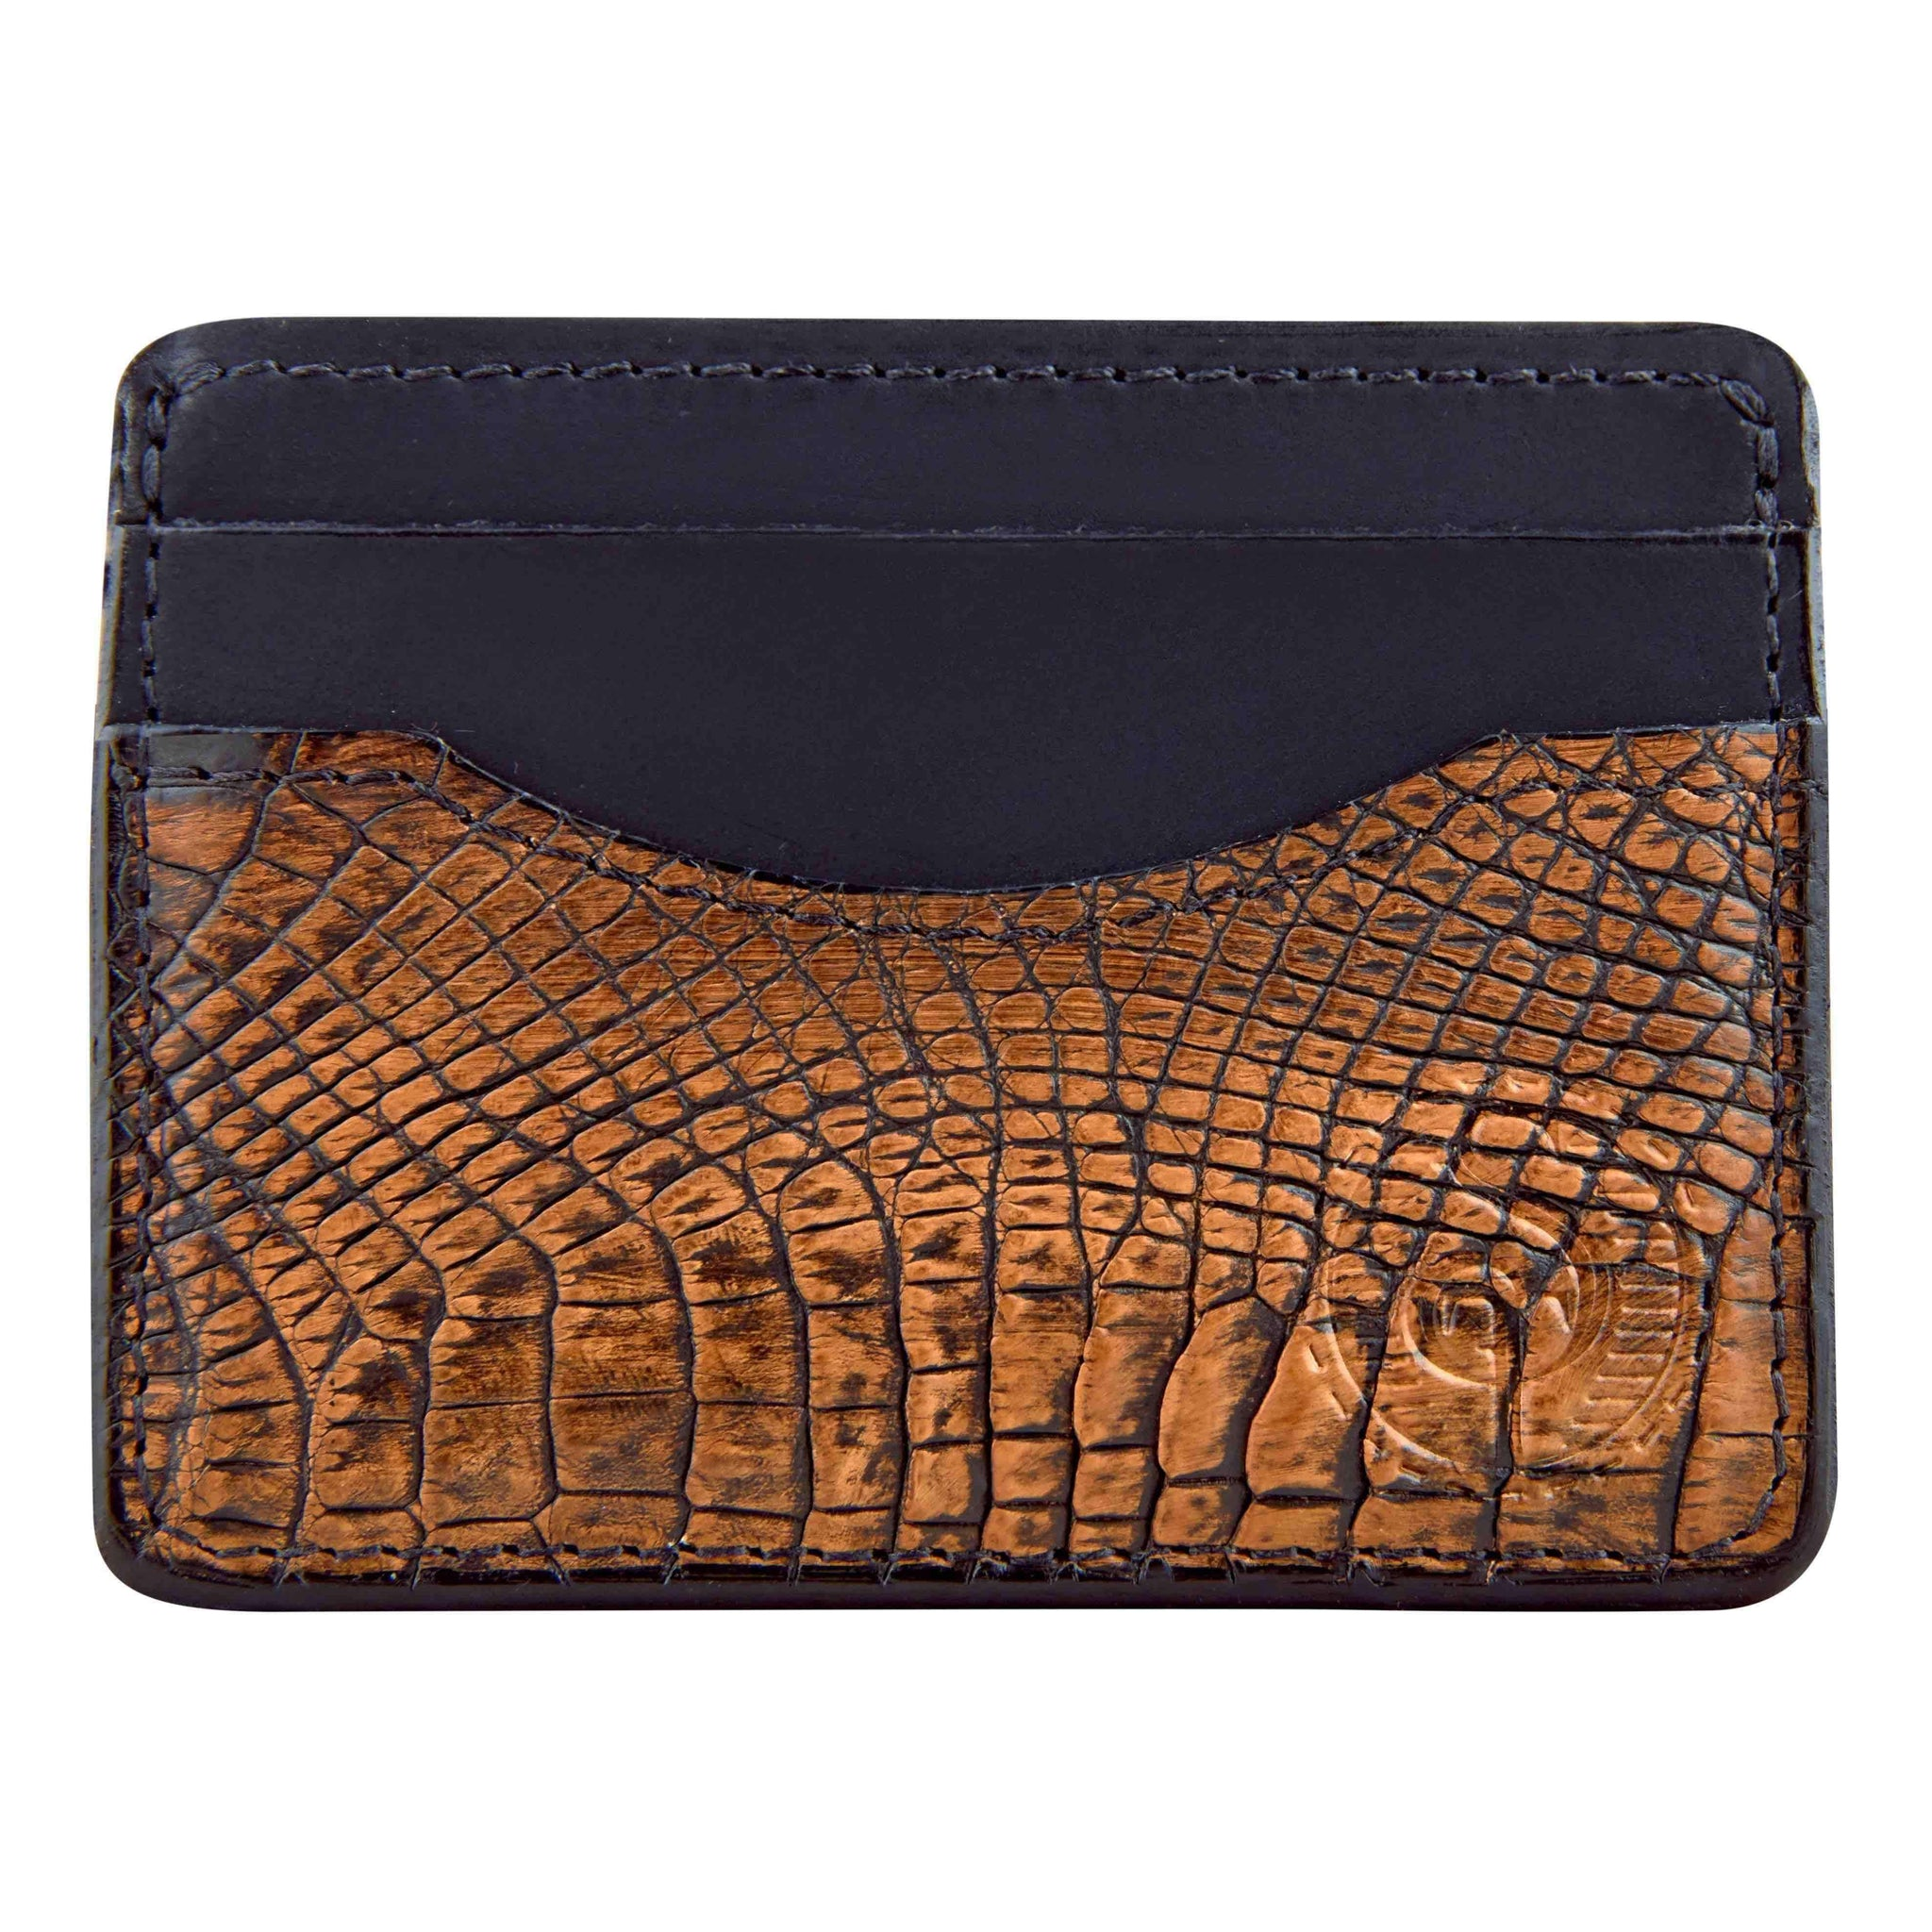 Alligator skin front pocket wallet for men